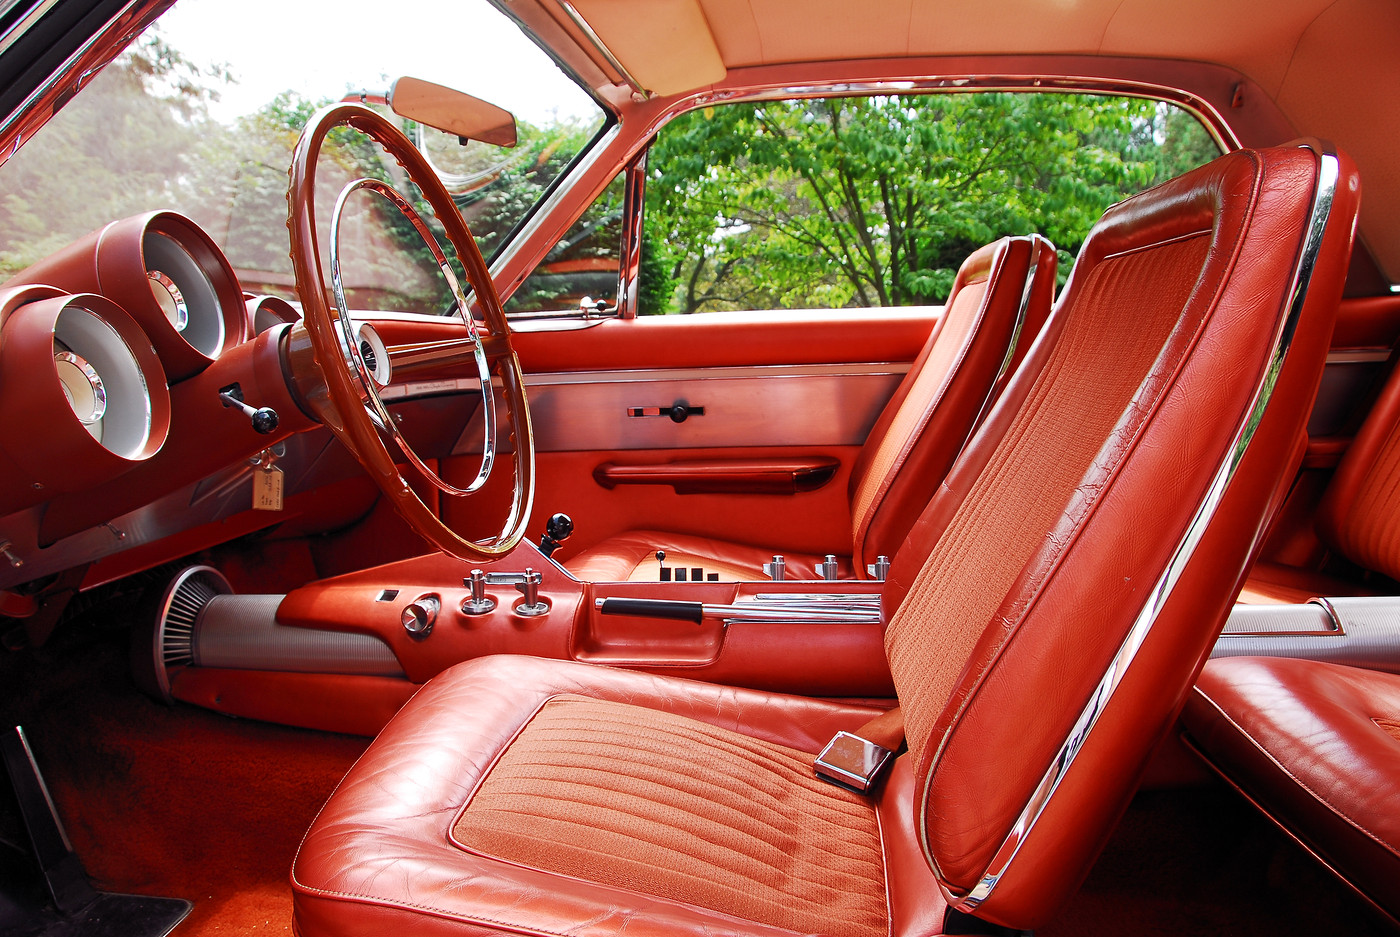 photo 19 1963 chrysler ghia turbine car front horizontal interior bucket seat detail view 2. Black Bedroom Furniture Sets. Home Design Ideas